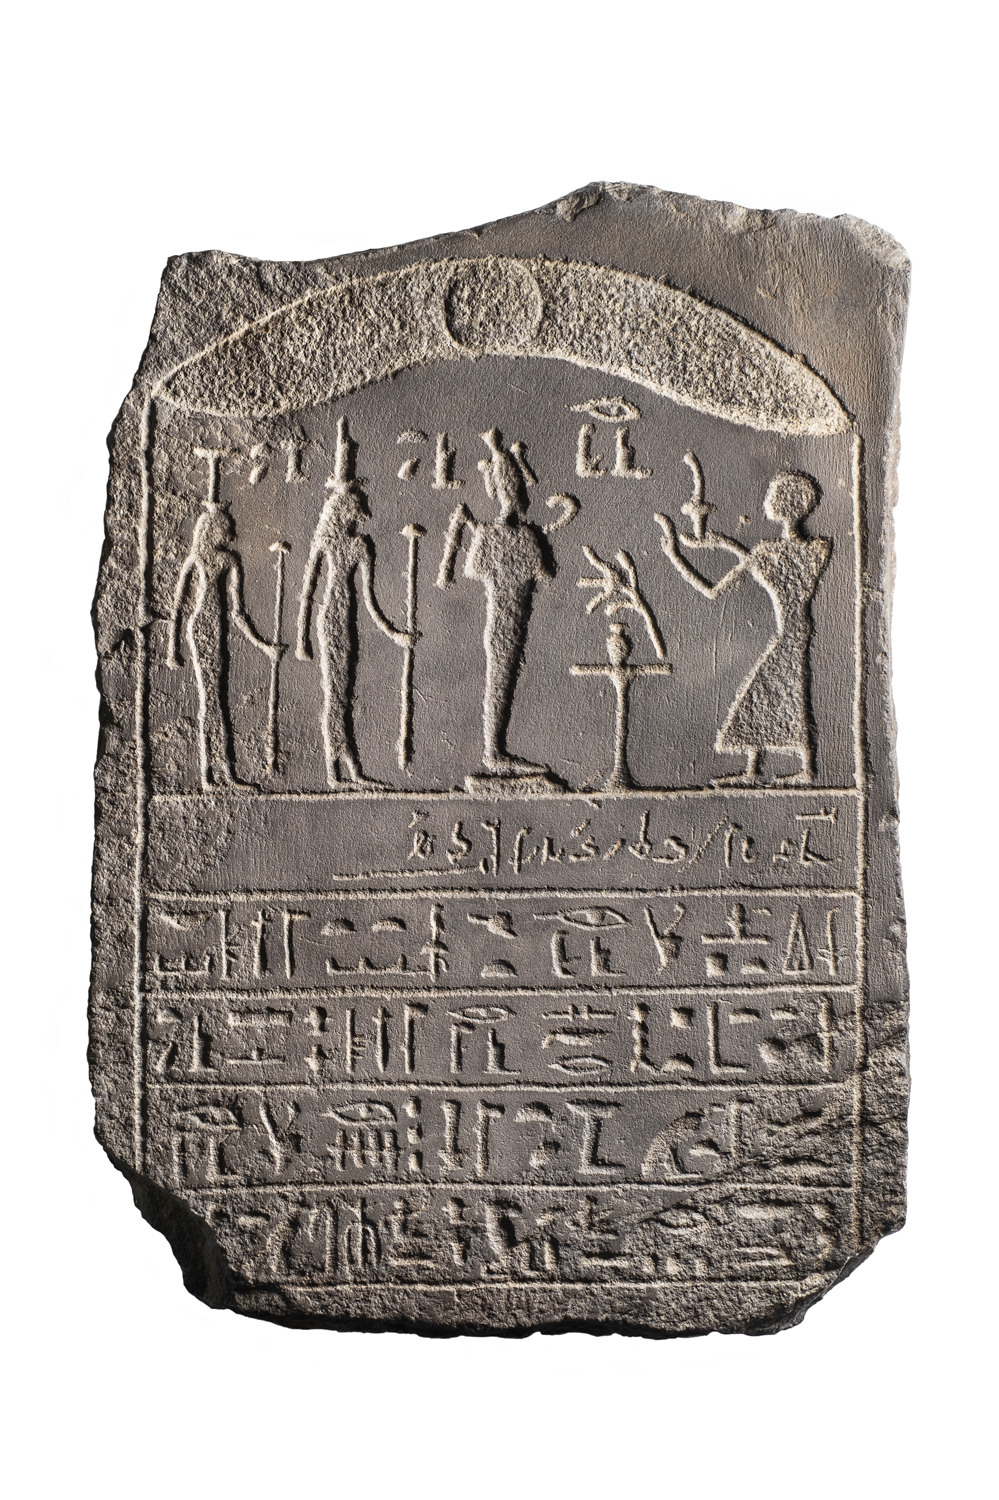 An ancient Egyptian basalt stela with inscriptions in demotic and hieroglyphs